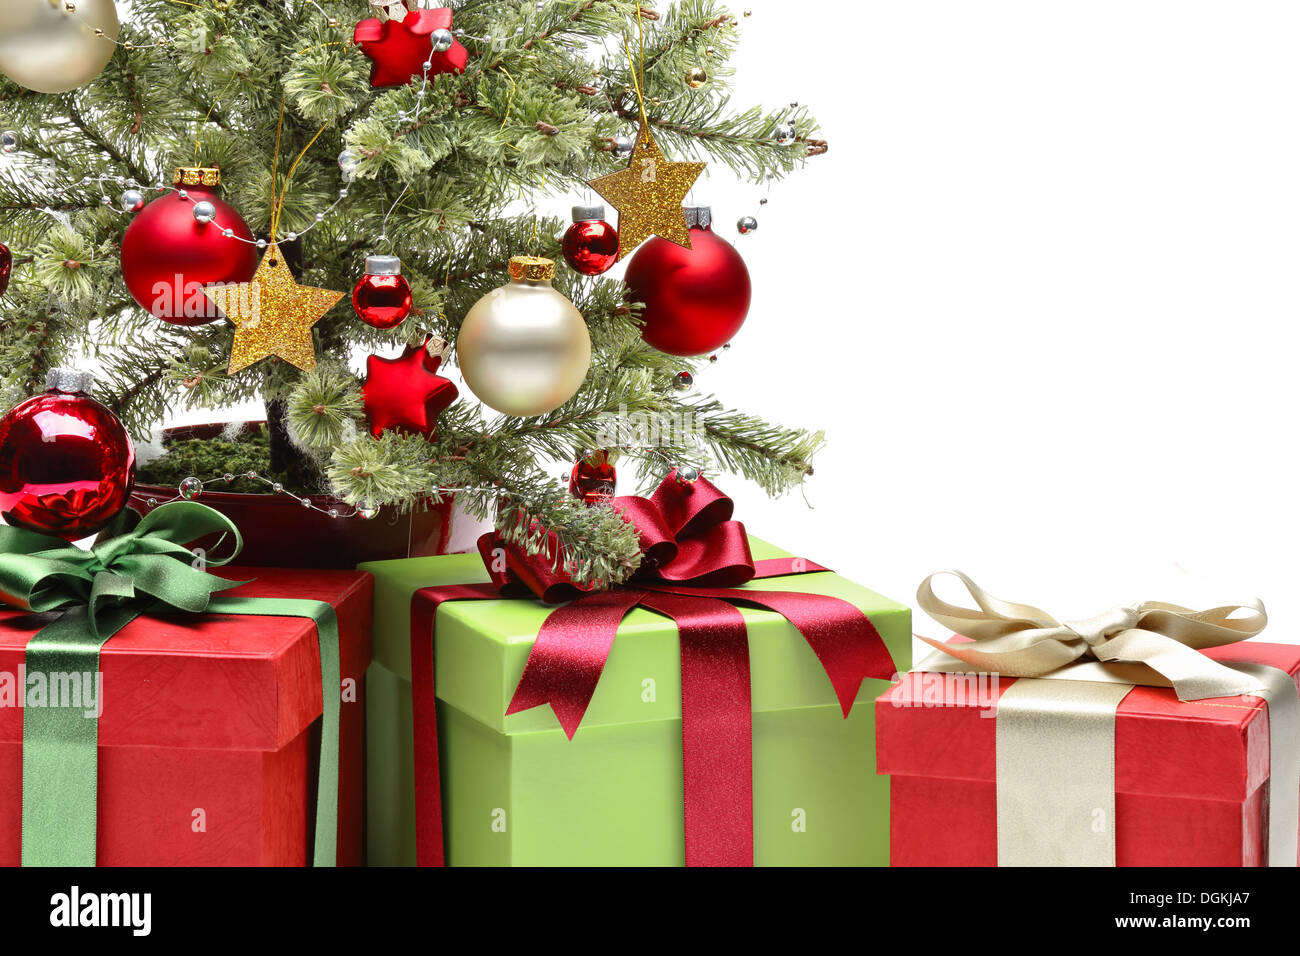 Decorated Christmas tree and gifts on white background - Stock Image